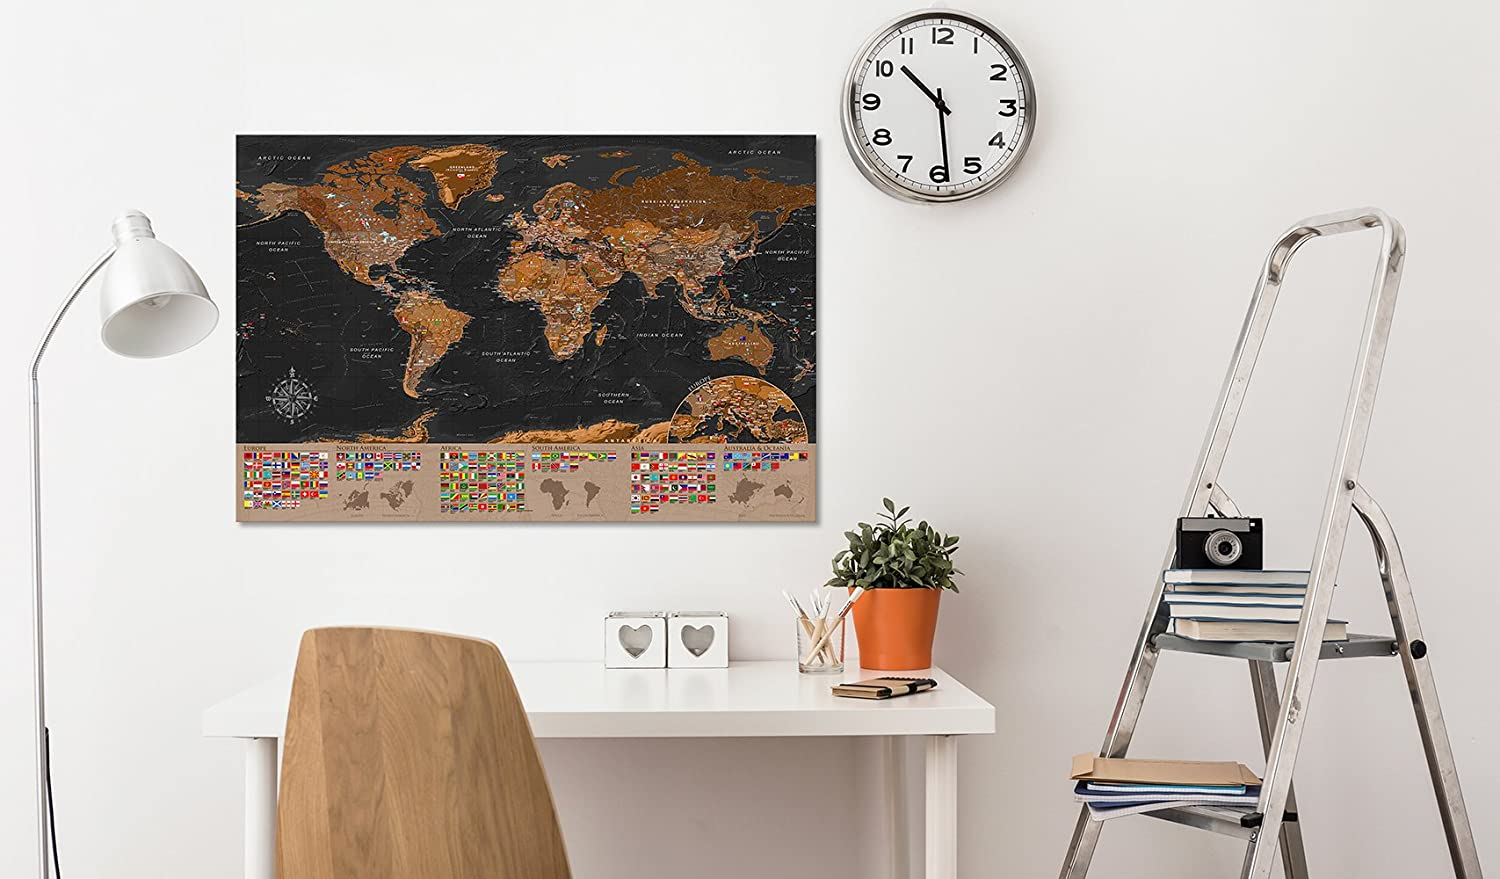 murando World map with pinboard 120x80 cm 1 Piece Print on Canvas Beaverboard Canvas Practical pinboard to Pinching Your Notes World map k-A-0206-v-a